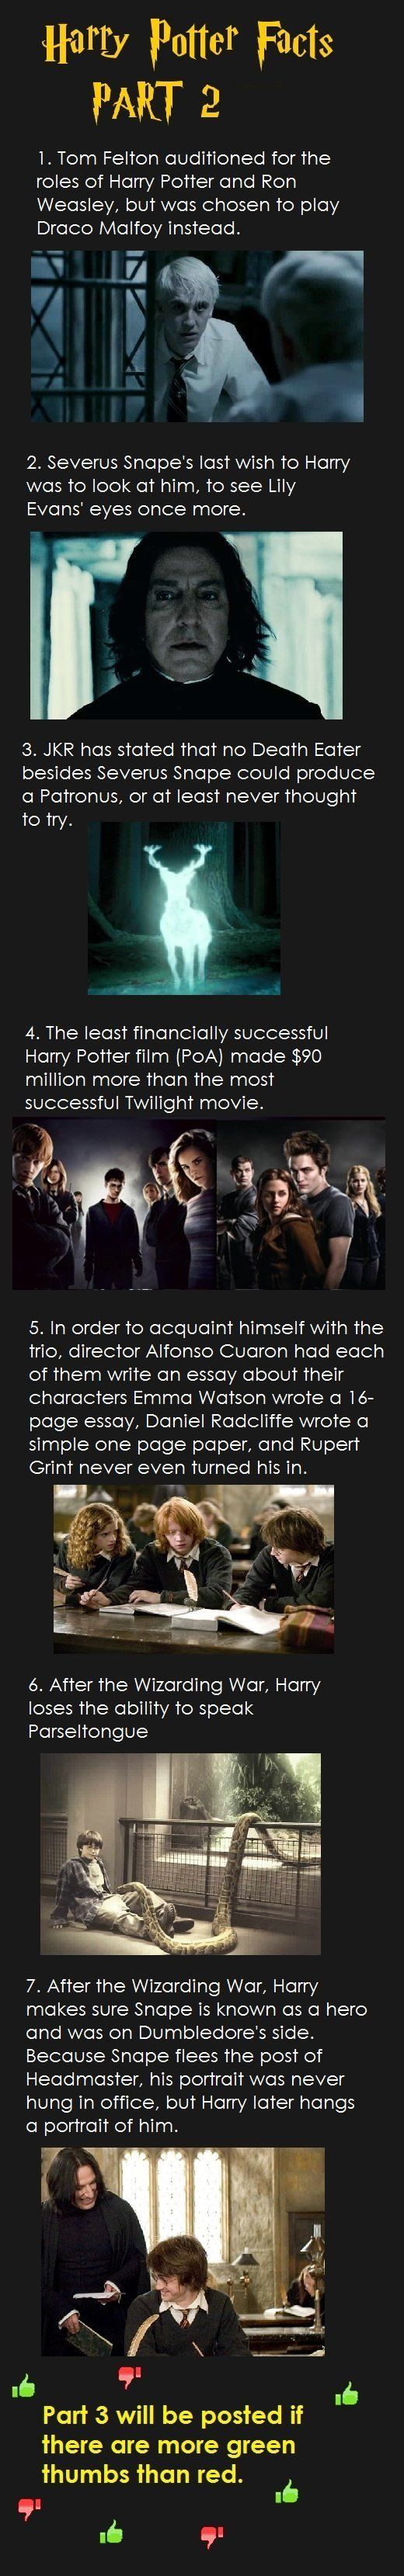 337 best images about harry and ginny on pinterest harry birthday - Interesting And Not Well Known Harry Potter Facts Part 2 I D Already Guessed